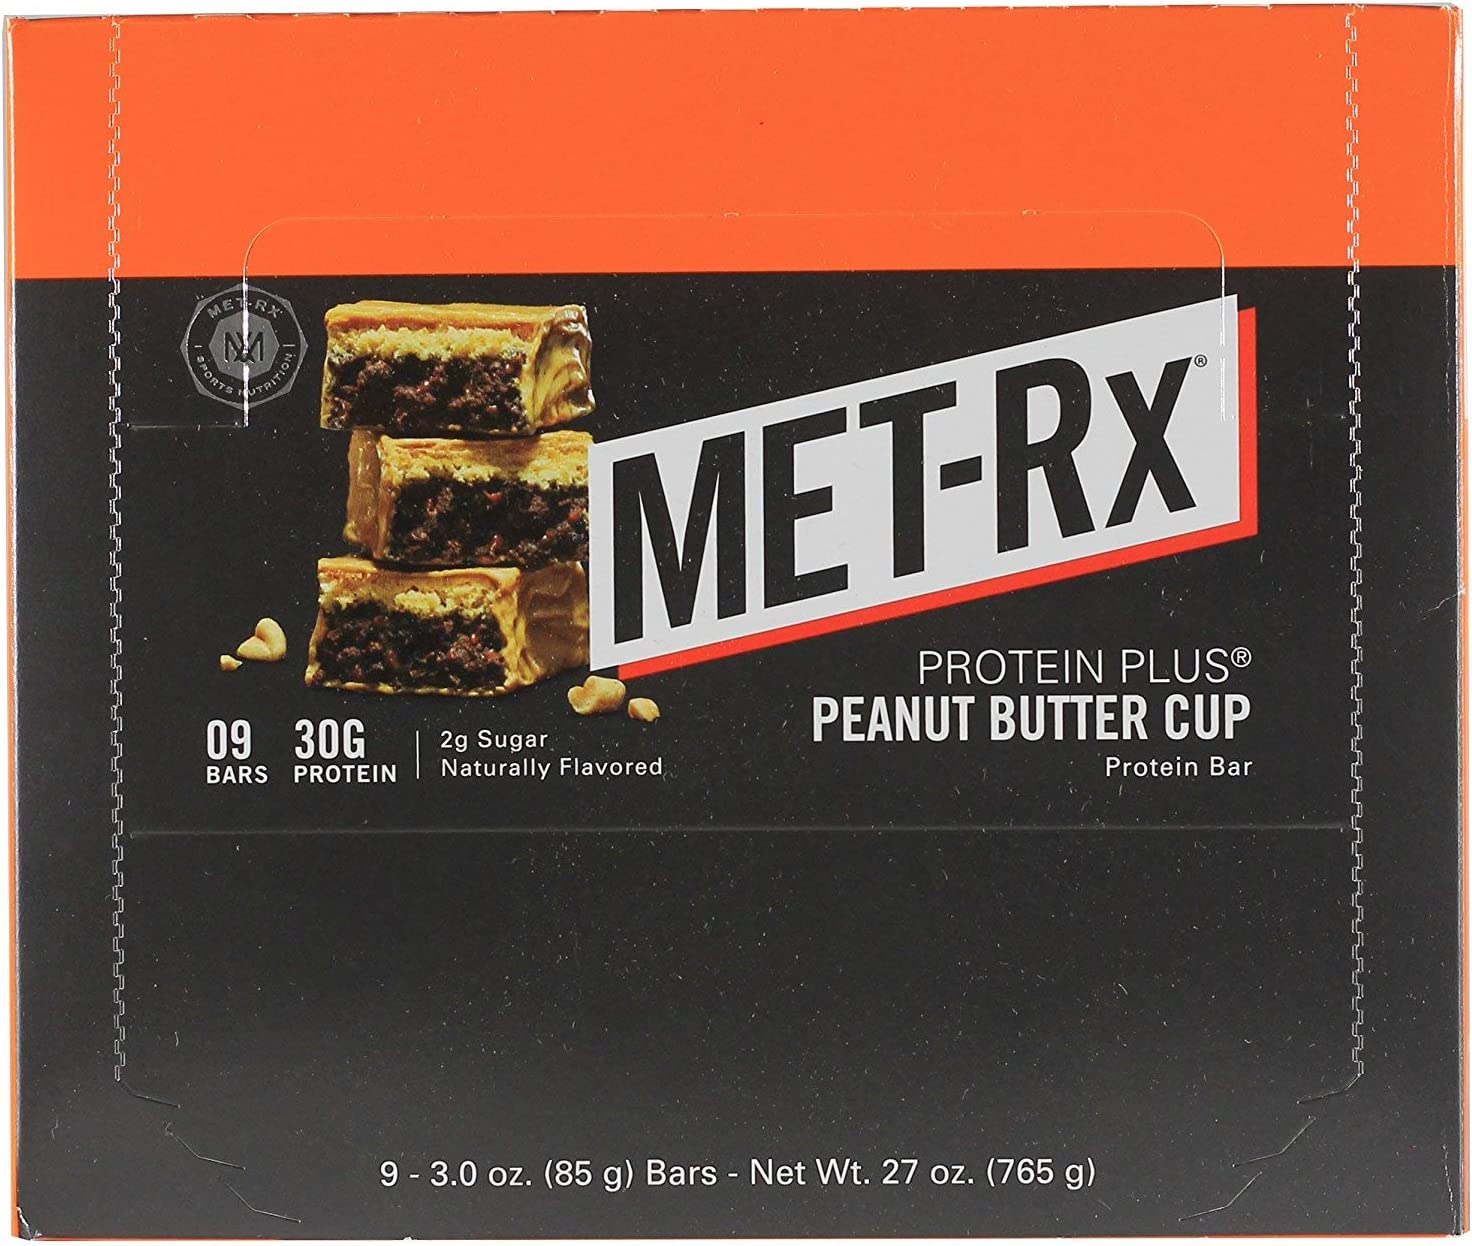 Met-RX Protein Plus Bar Peanut Butter Cup 9/